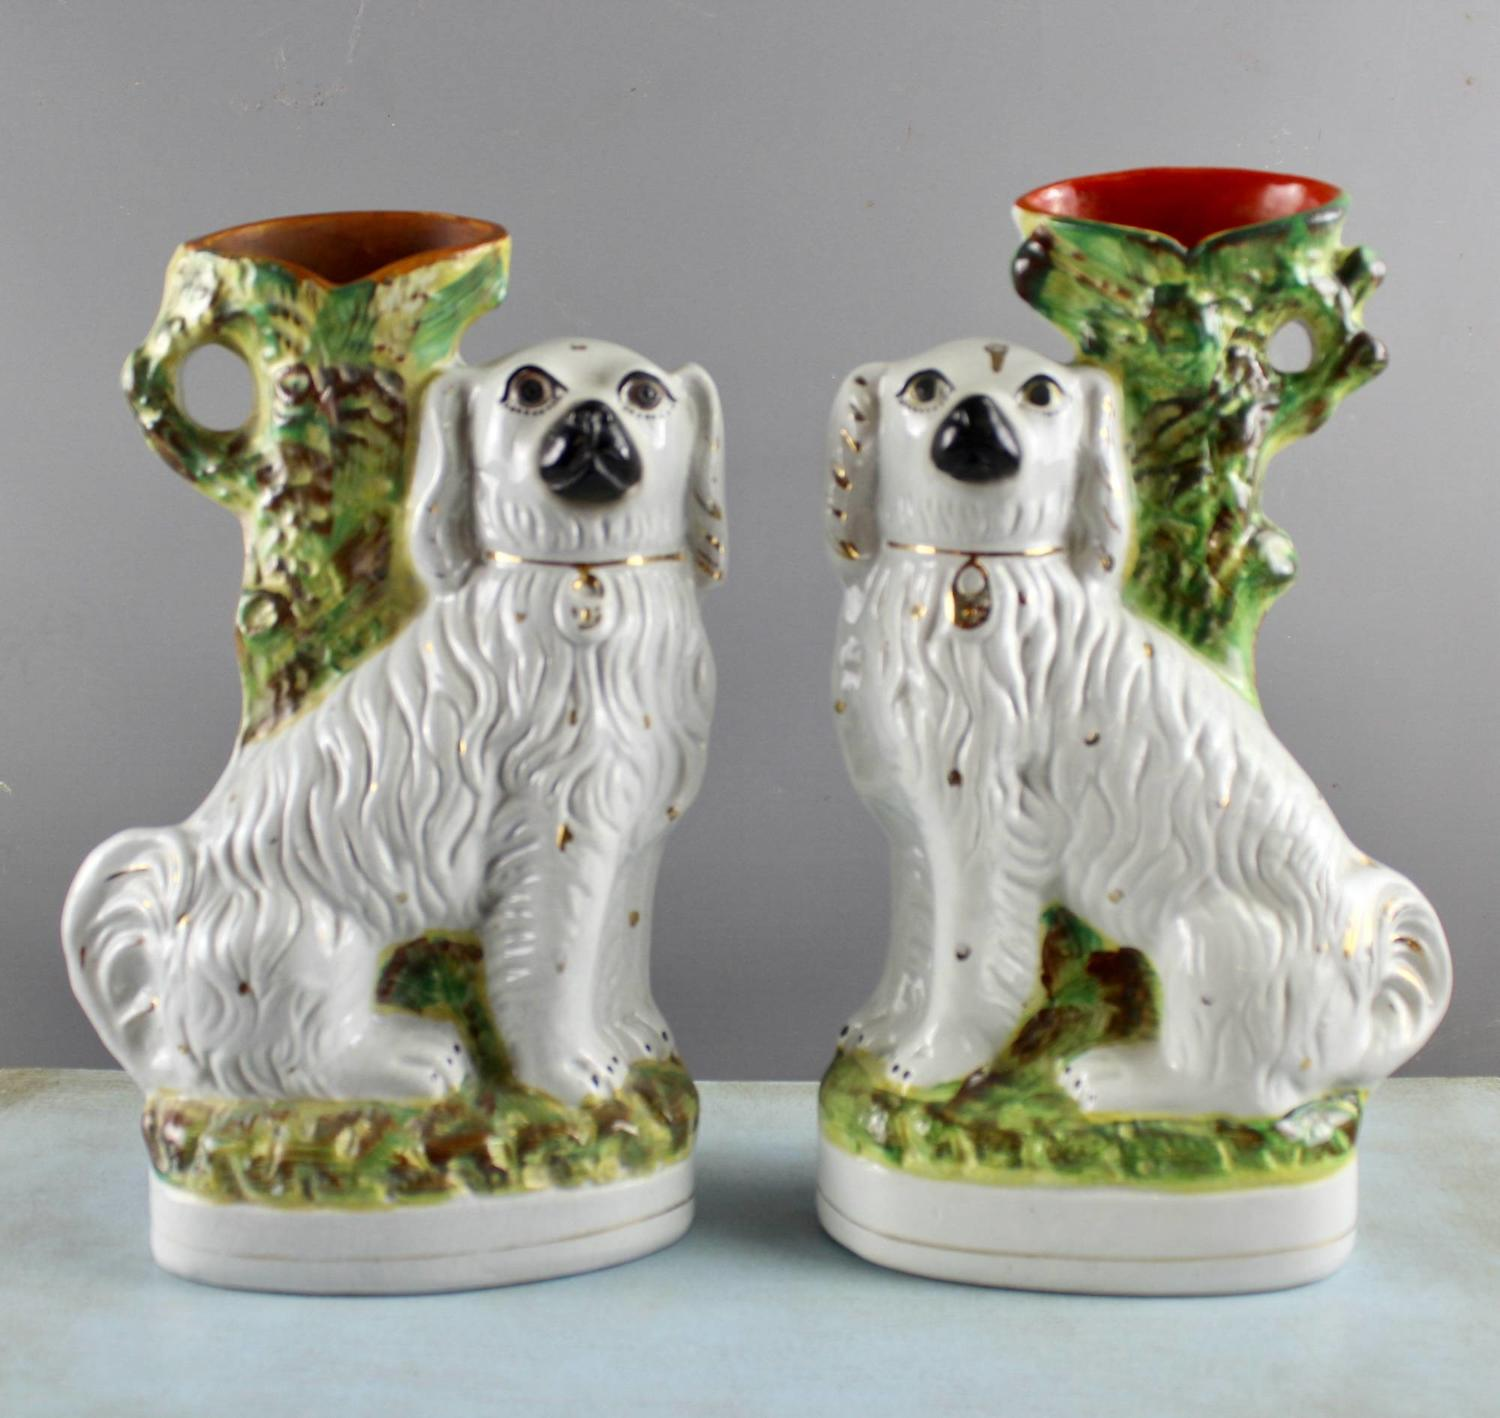 Pair of Staffordshire Spaniel Spill Vases